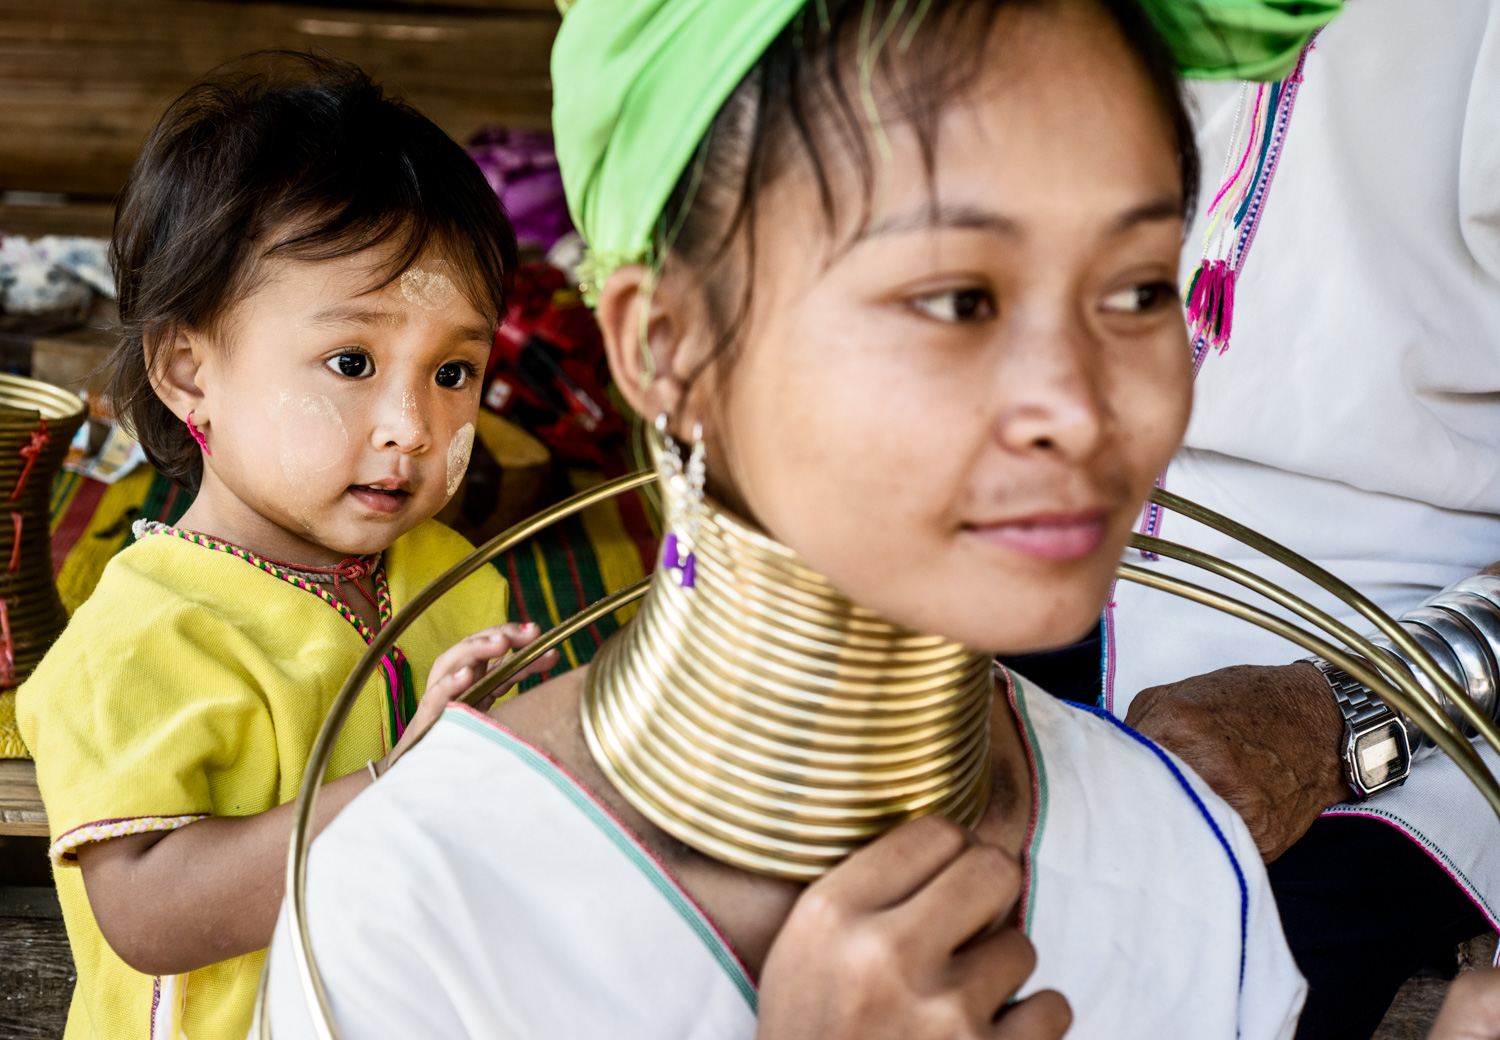 girl with Kayan Neck Rings  - 8 Tips to Help Find the Subject for Your Composition